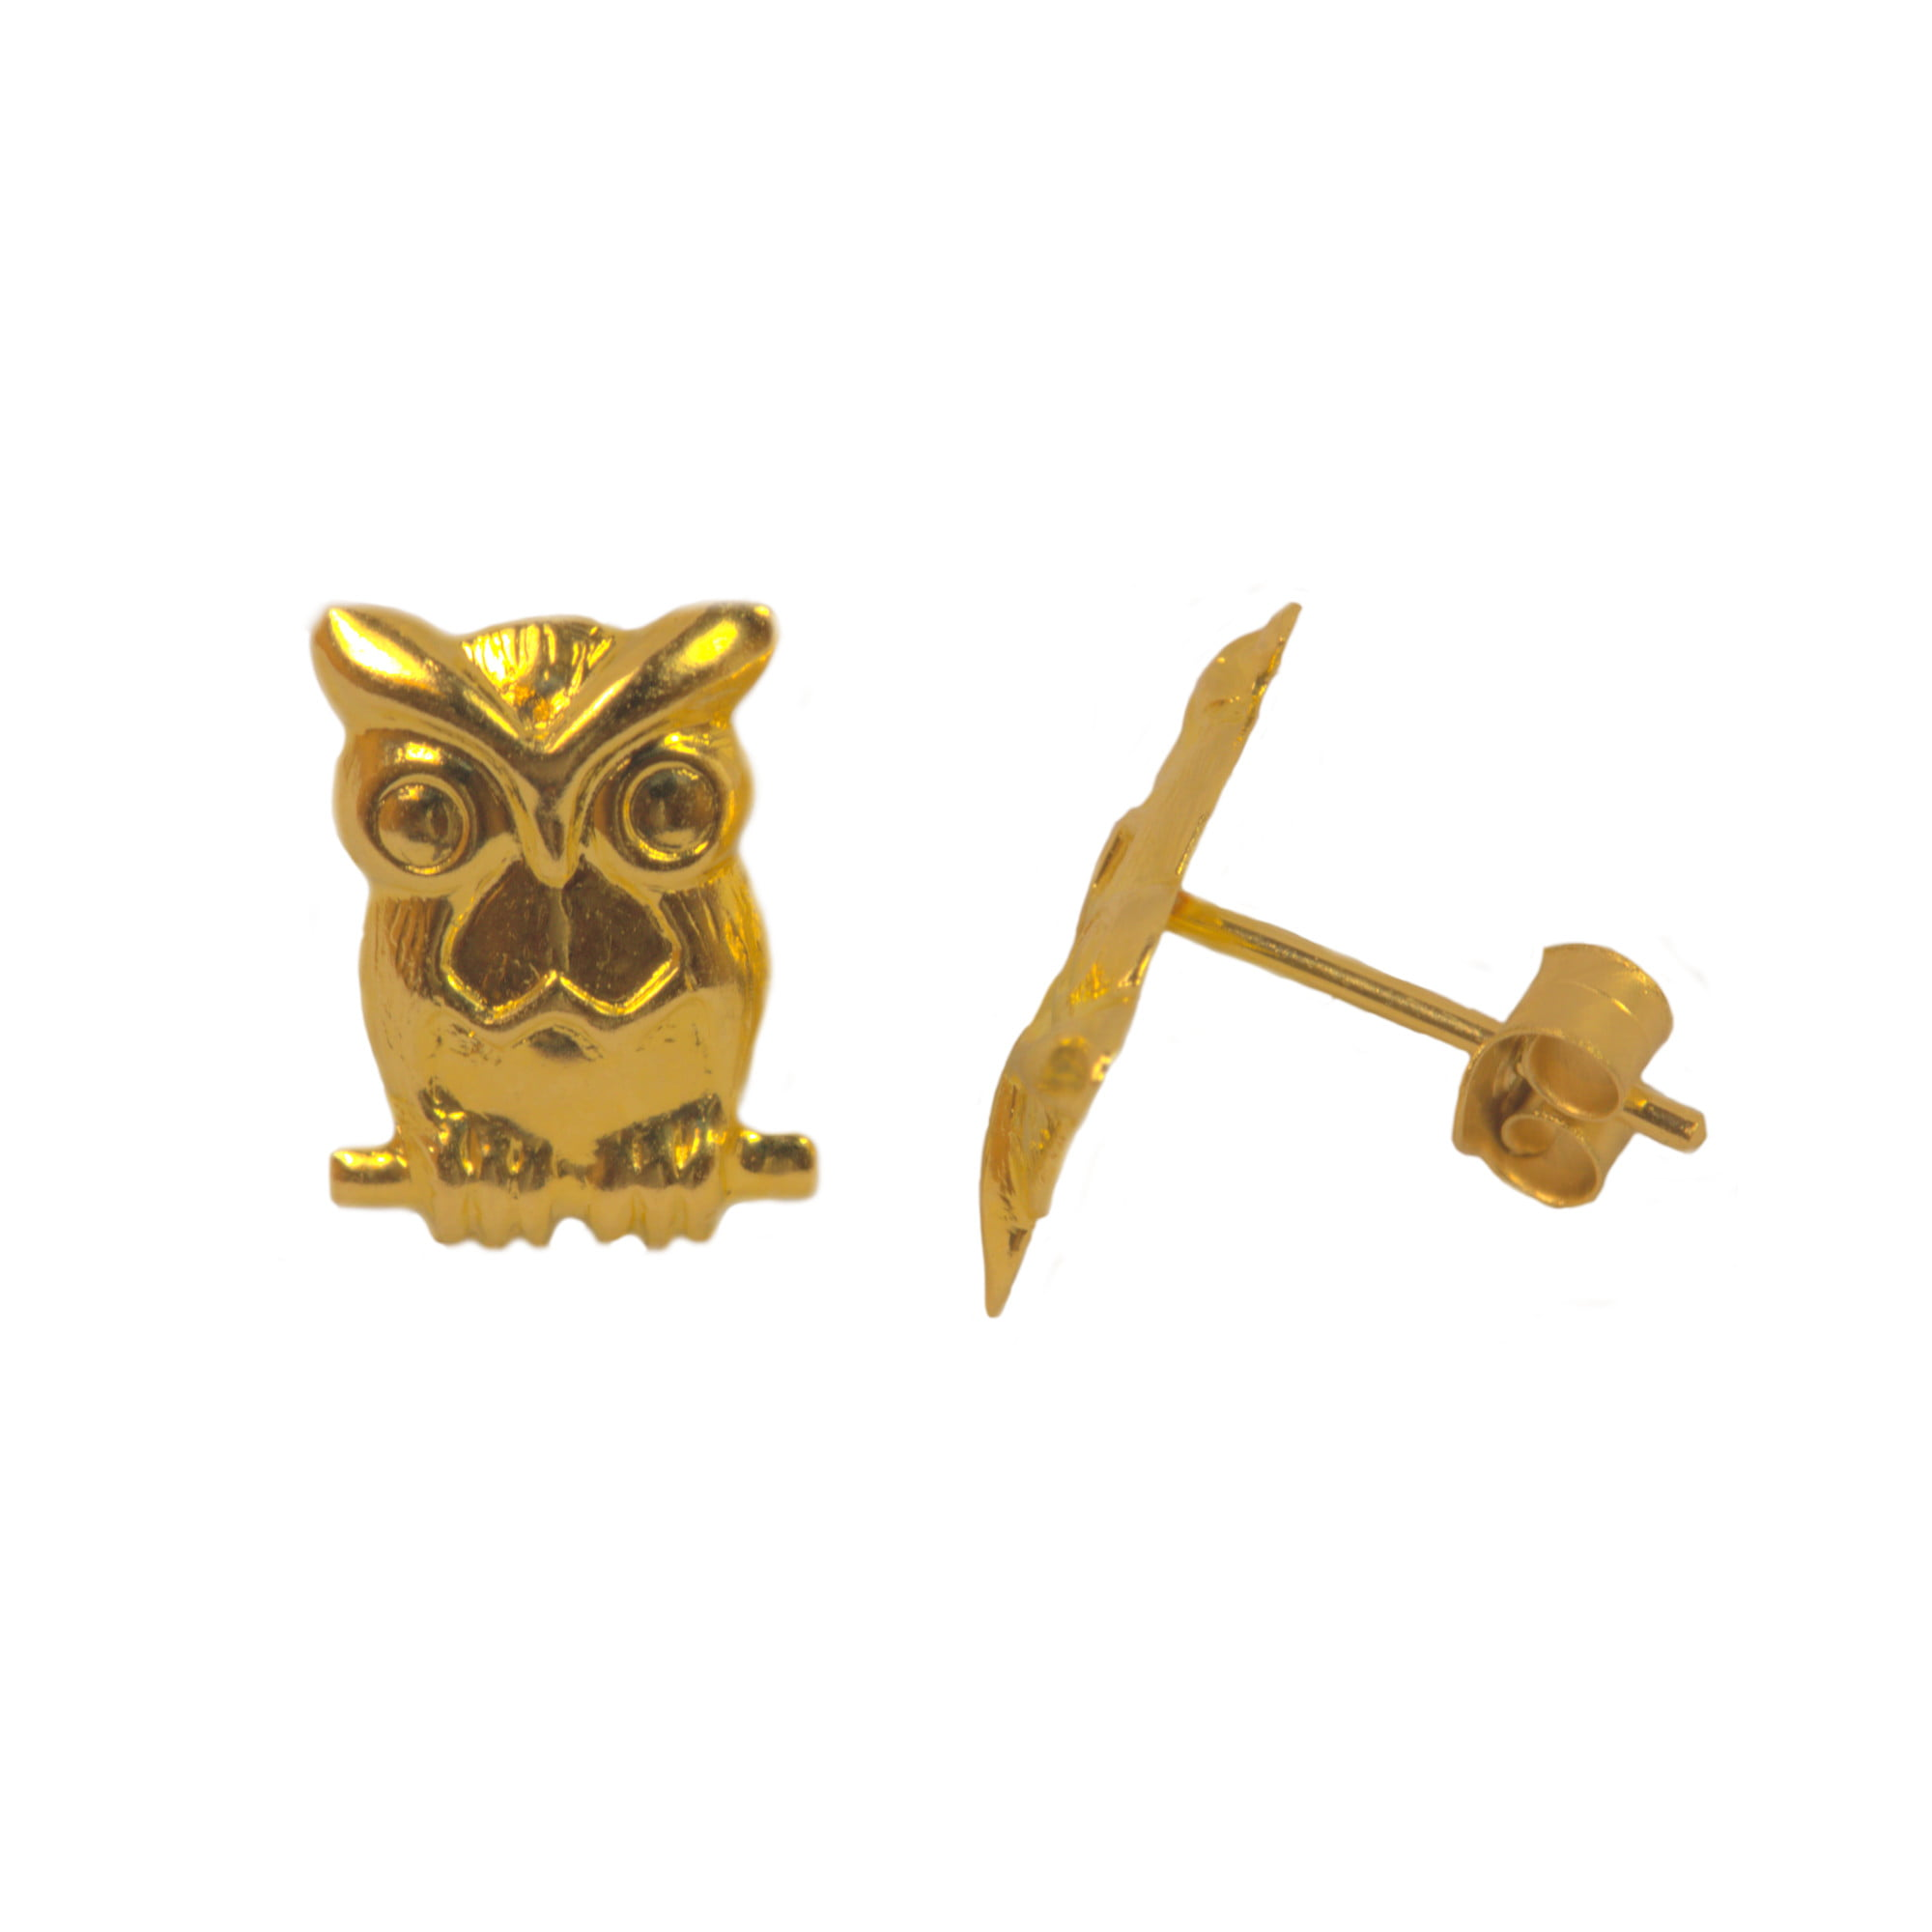 Owl earrings in 9ct gold side view